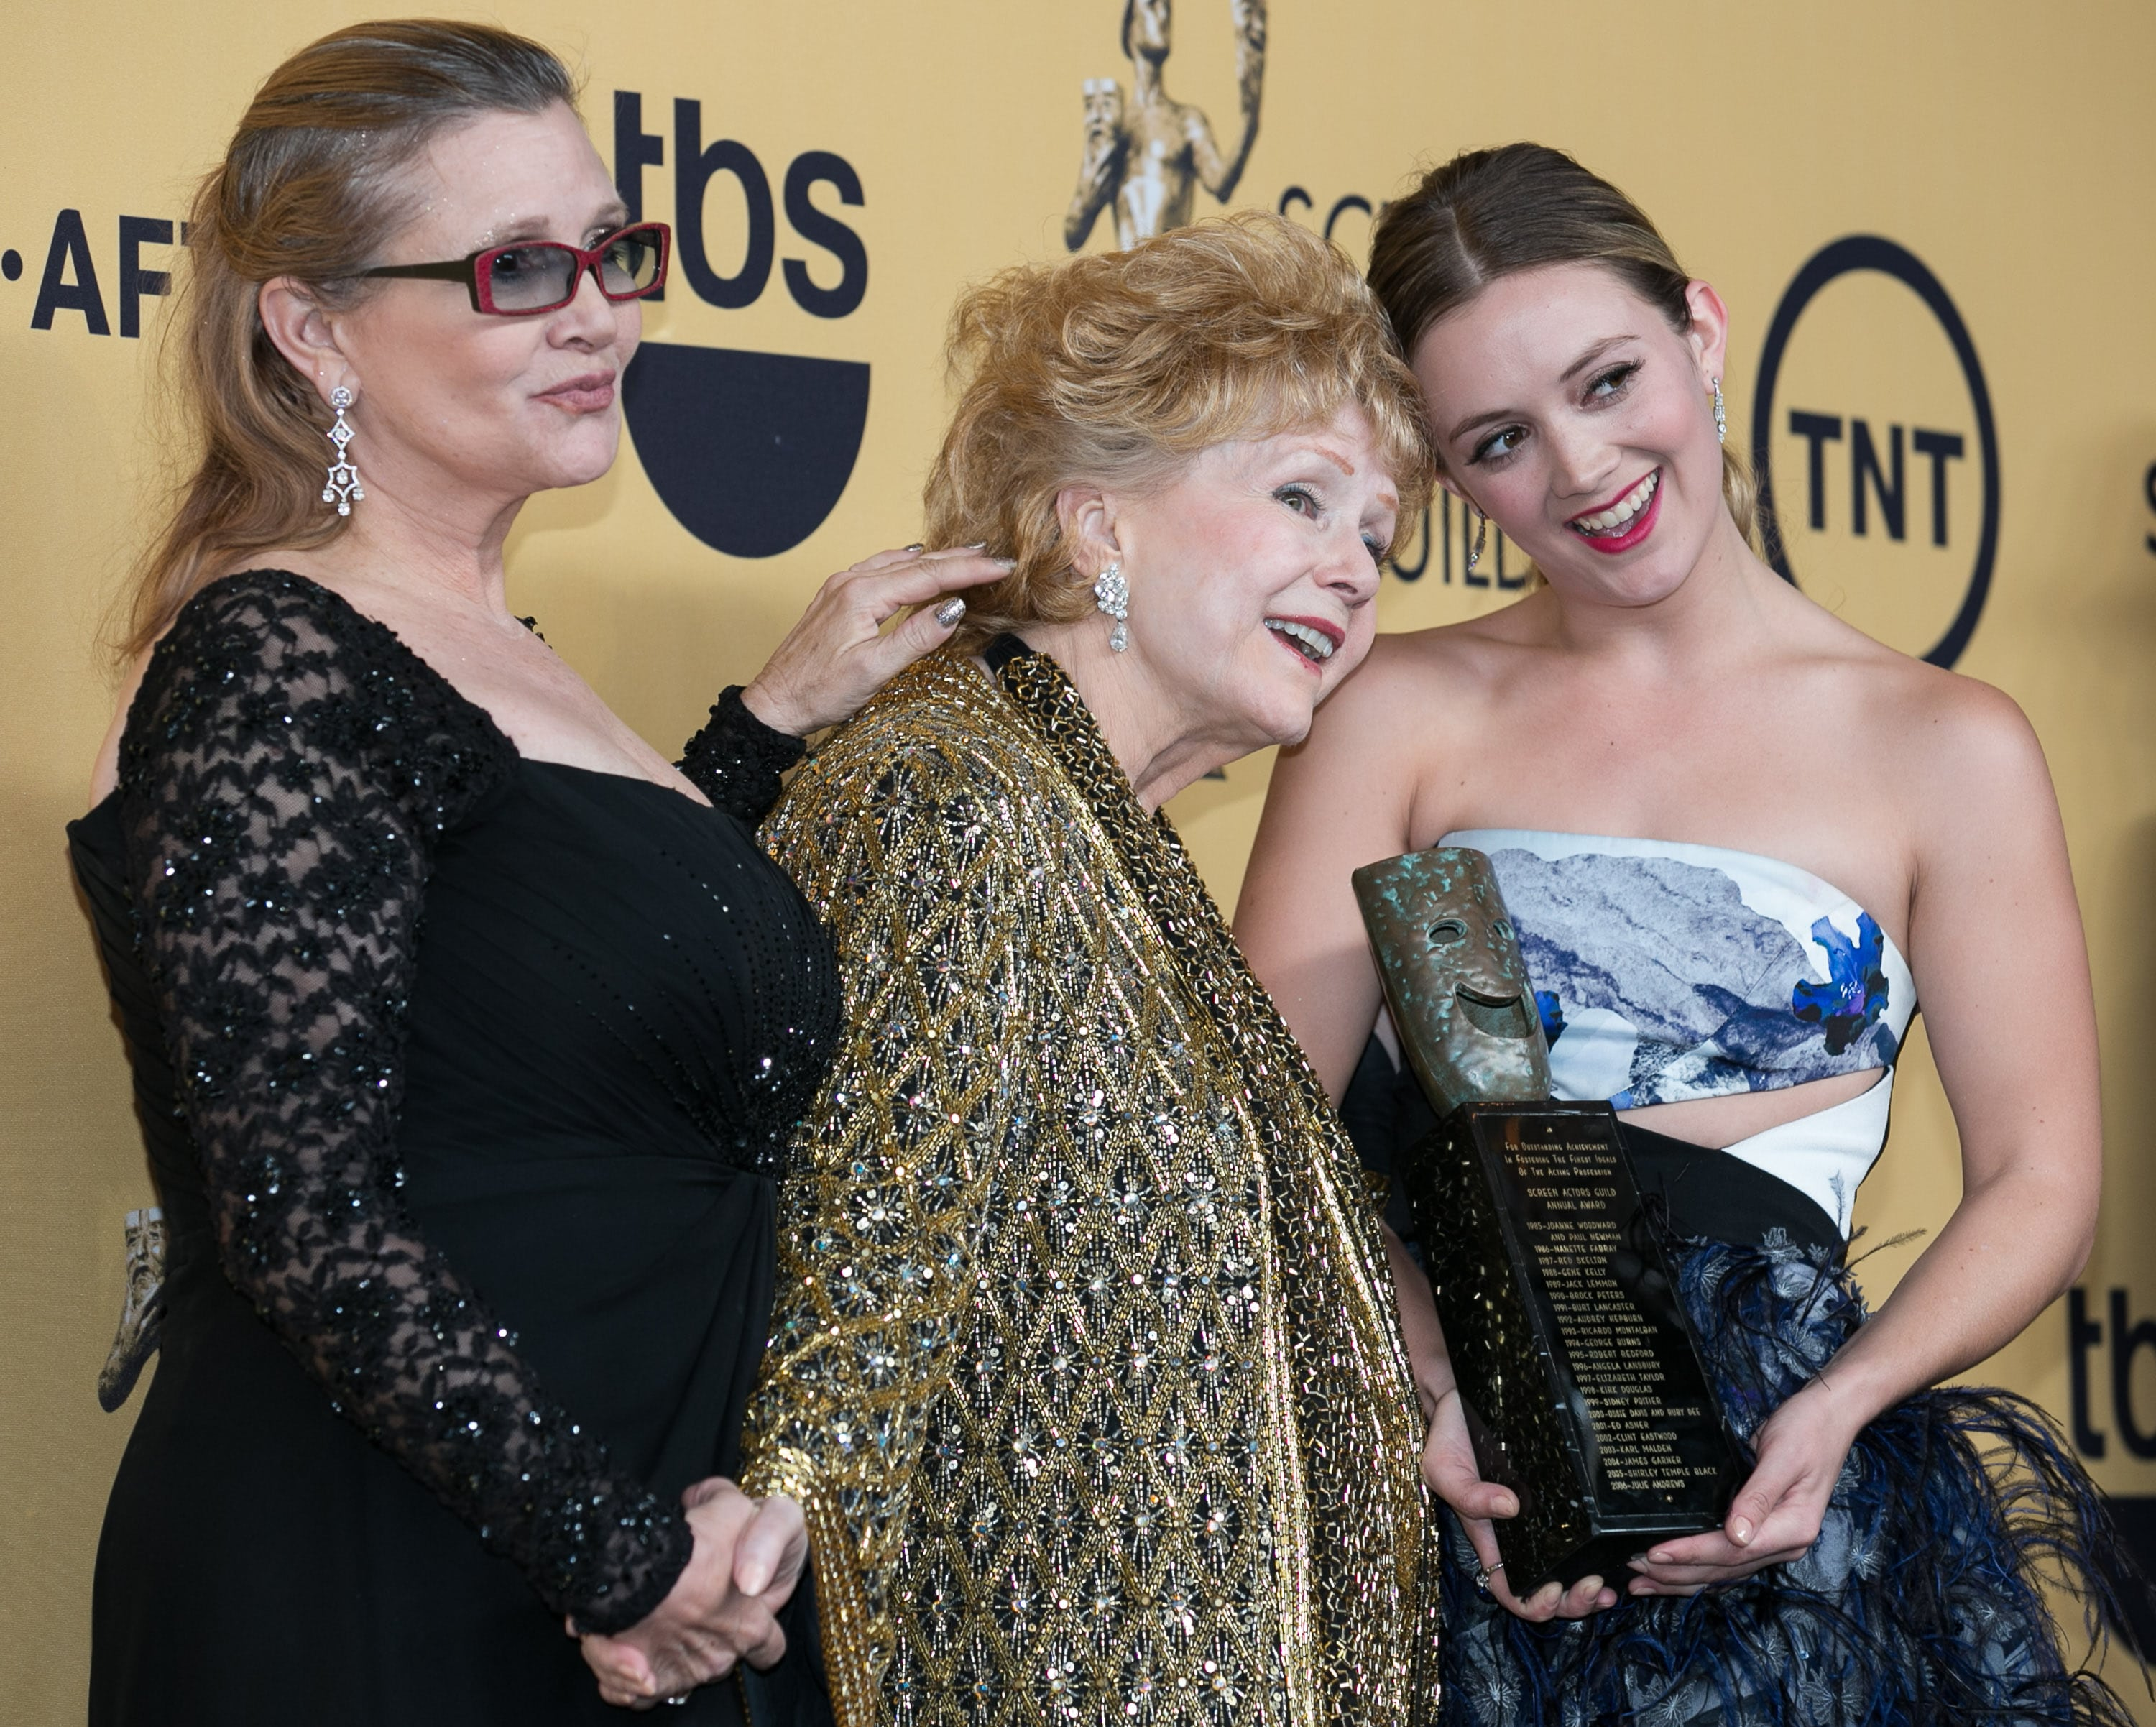 Billie Lourd honored her grandmother Debbie Reynolds on what would have been her 86th birthday. (Photo: WENN)